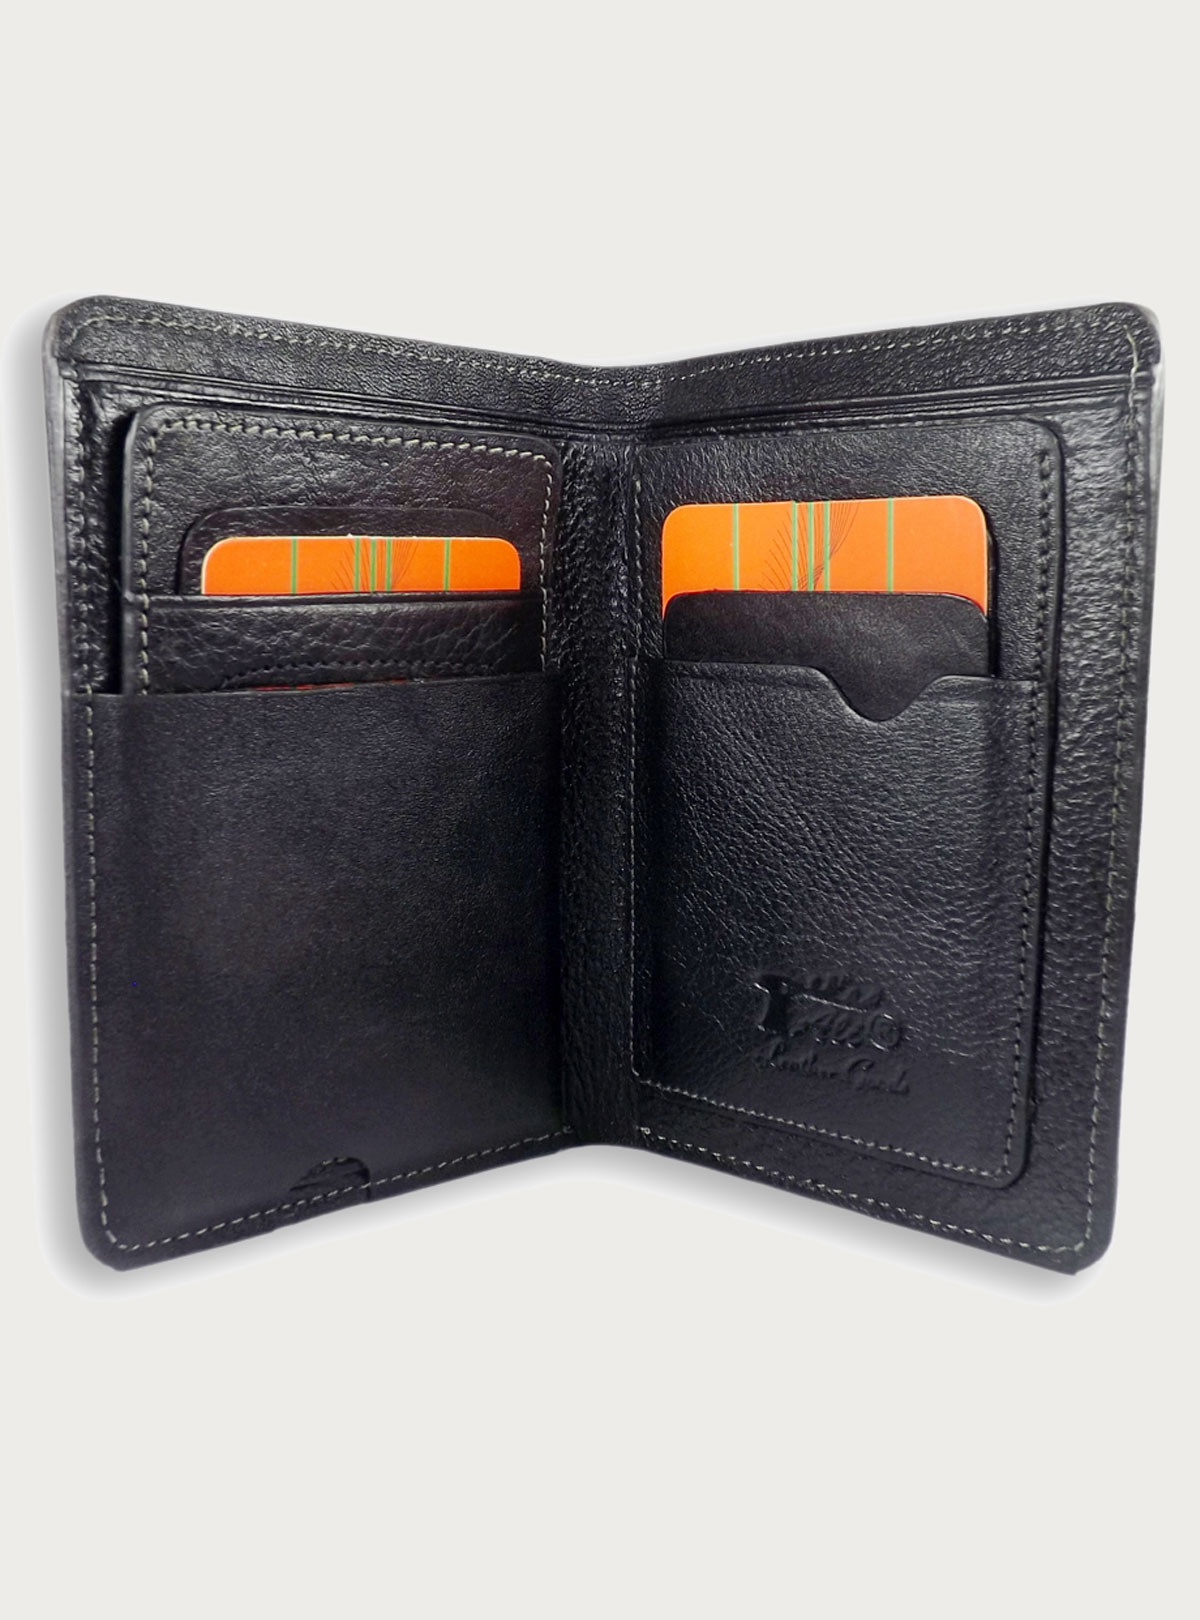 Leather wallet with Removable ID Card Holder